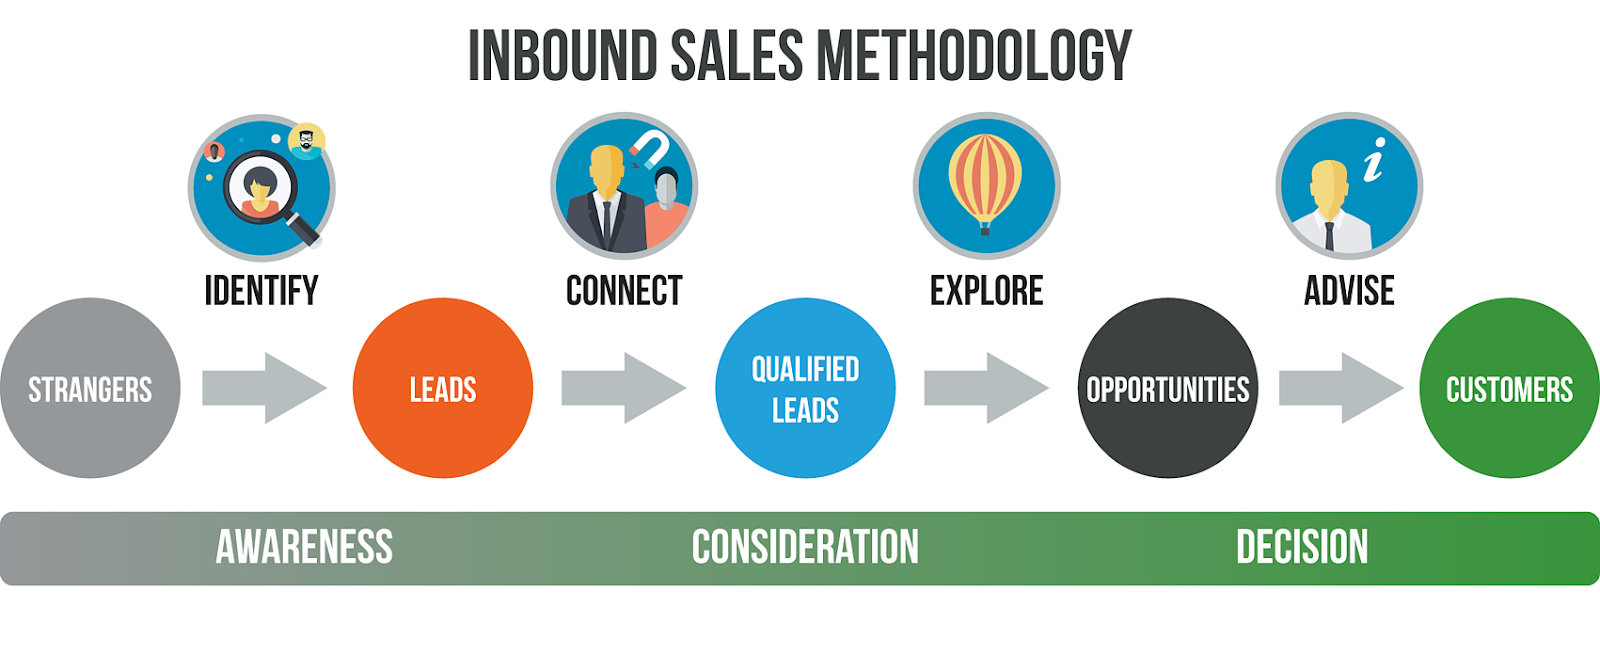 What is Inbound Sales and How Can It Help My Business Grow?